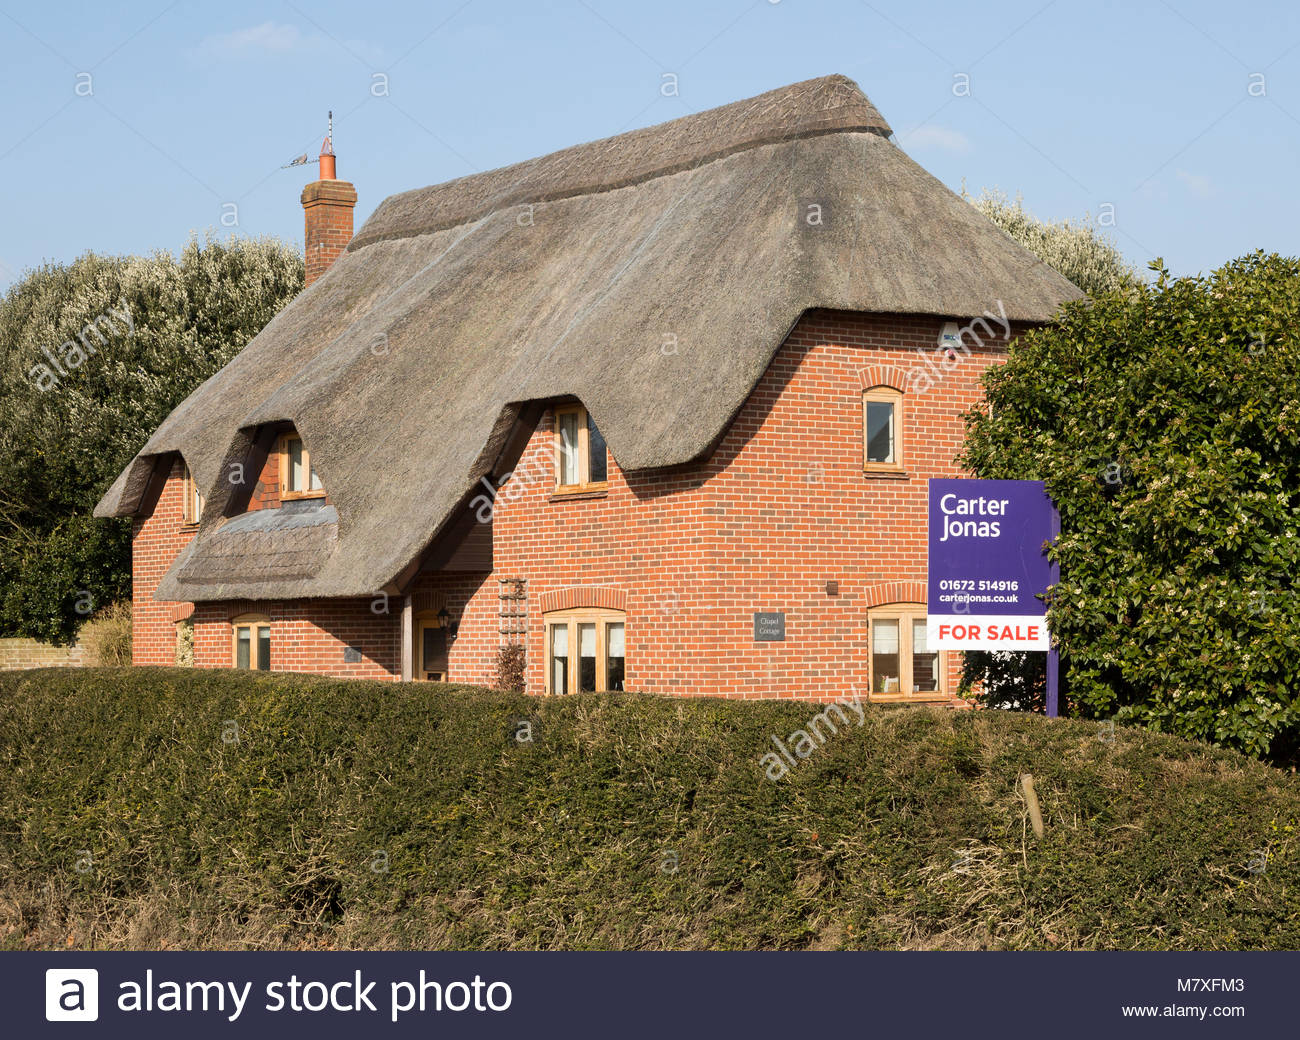 Thatched country cottage for sale with Carter Jonas estate agent sign outside,  Alton Priors, Wiltshire, England, - Stock Image